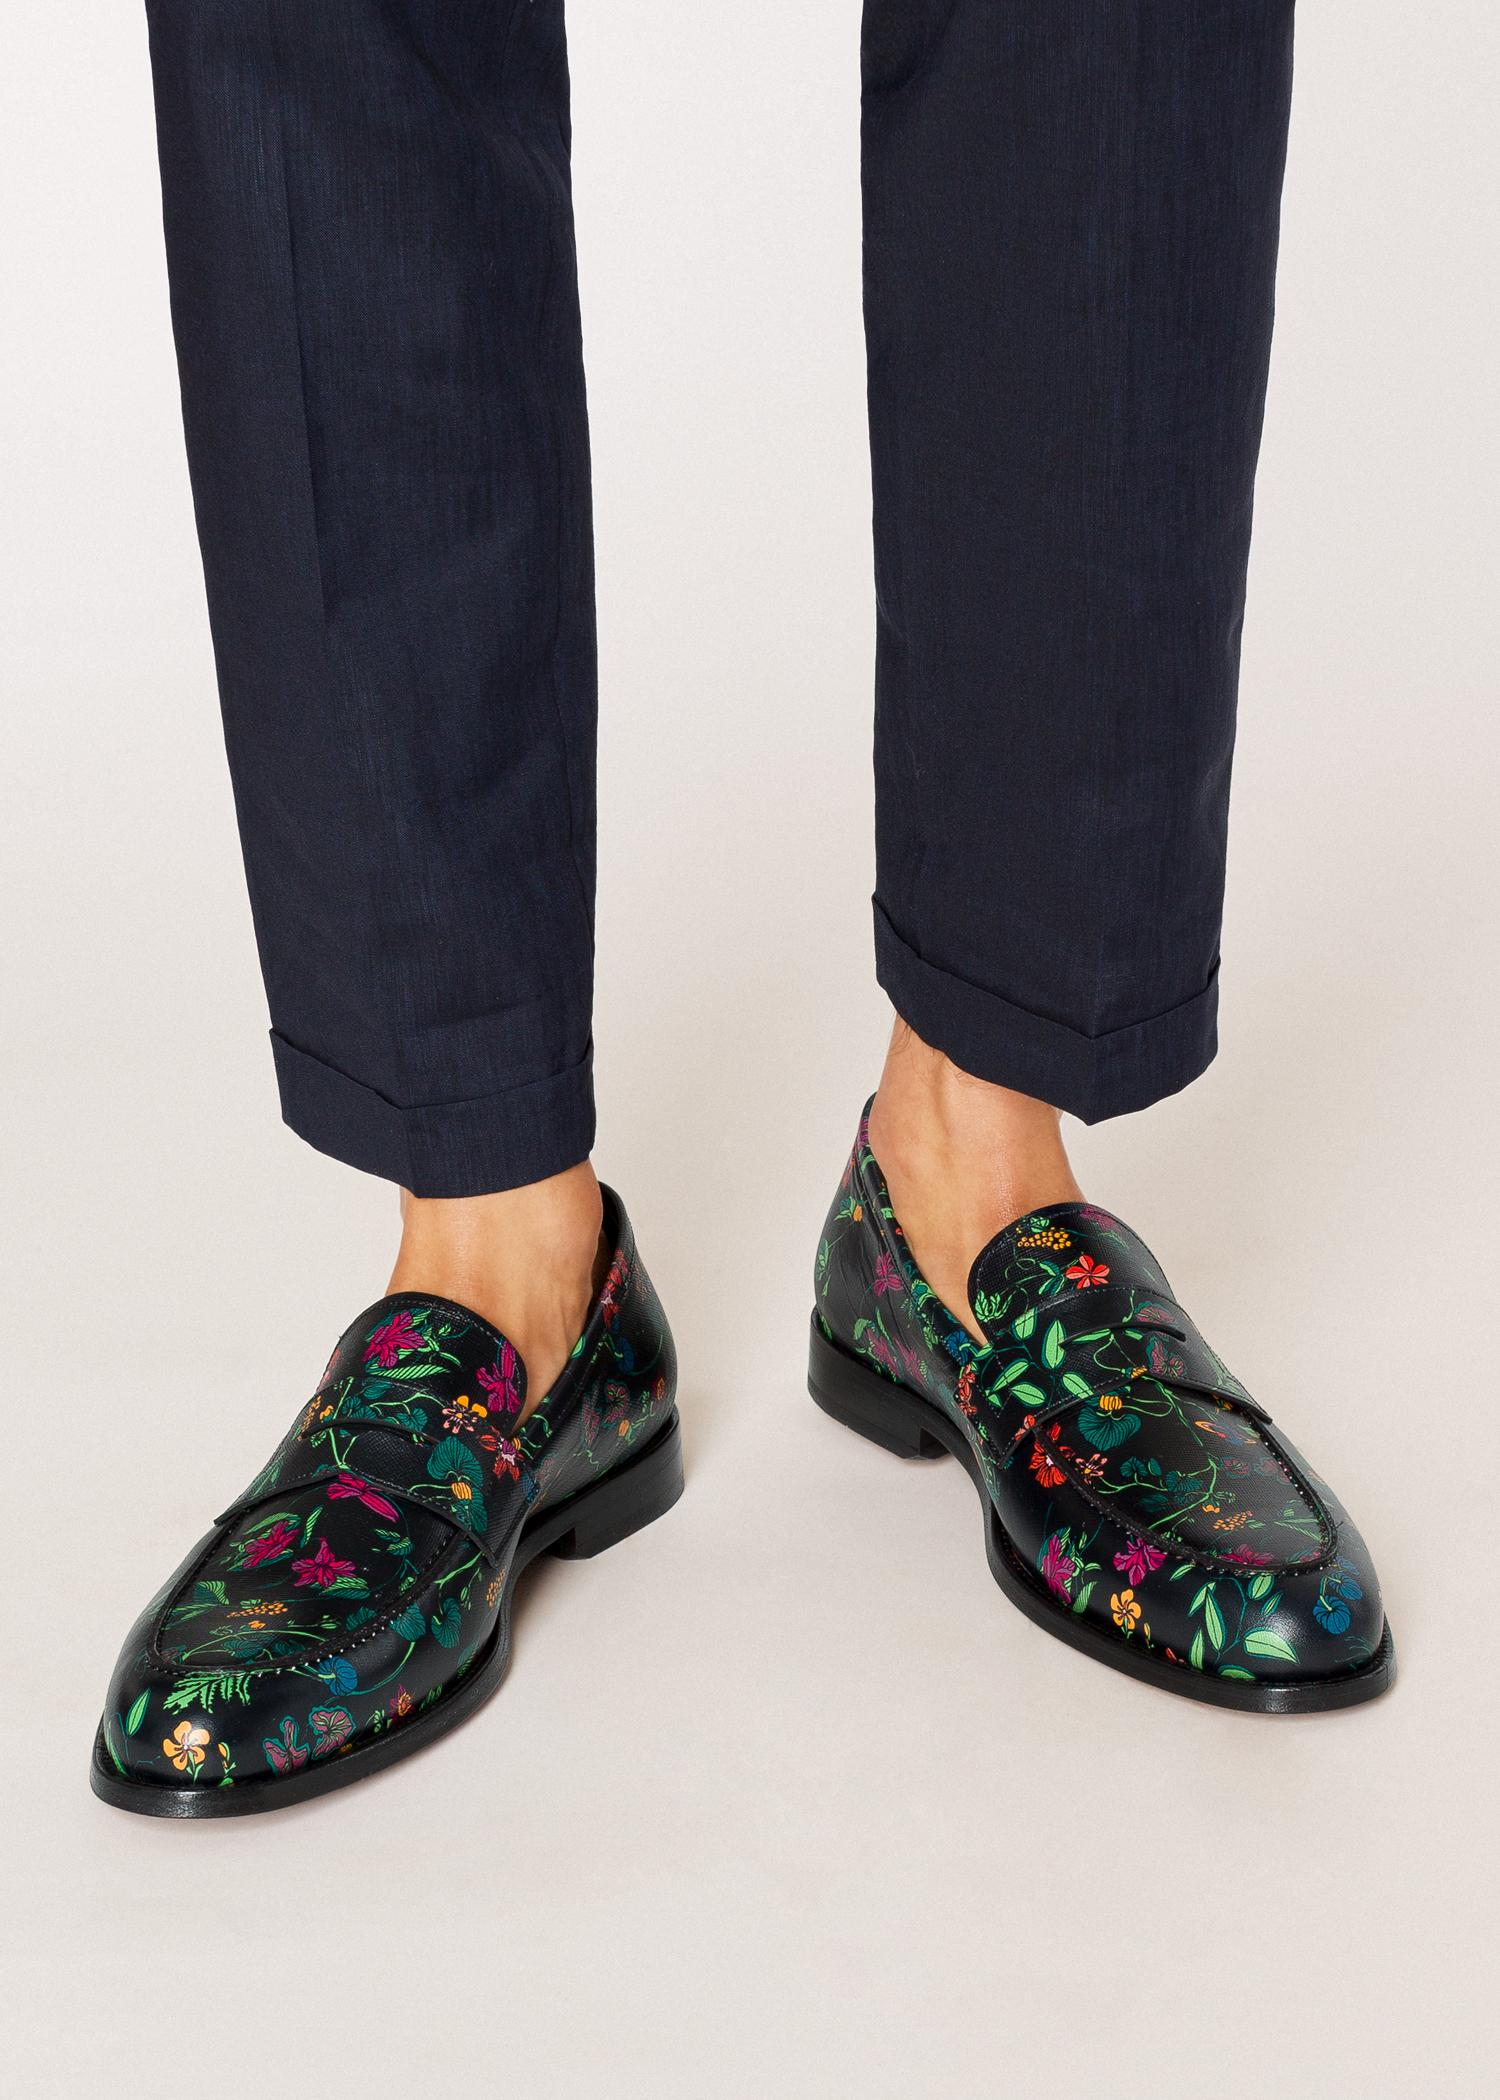 c12d487cdaf Paul Smith - Black  explorer Floral  Print Leather  wolf  Loafers for Men.  View fullscreen